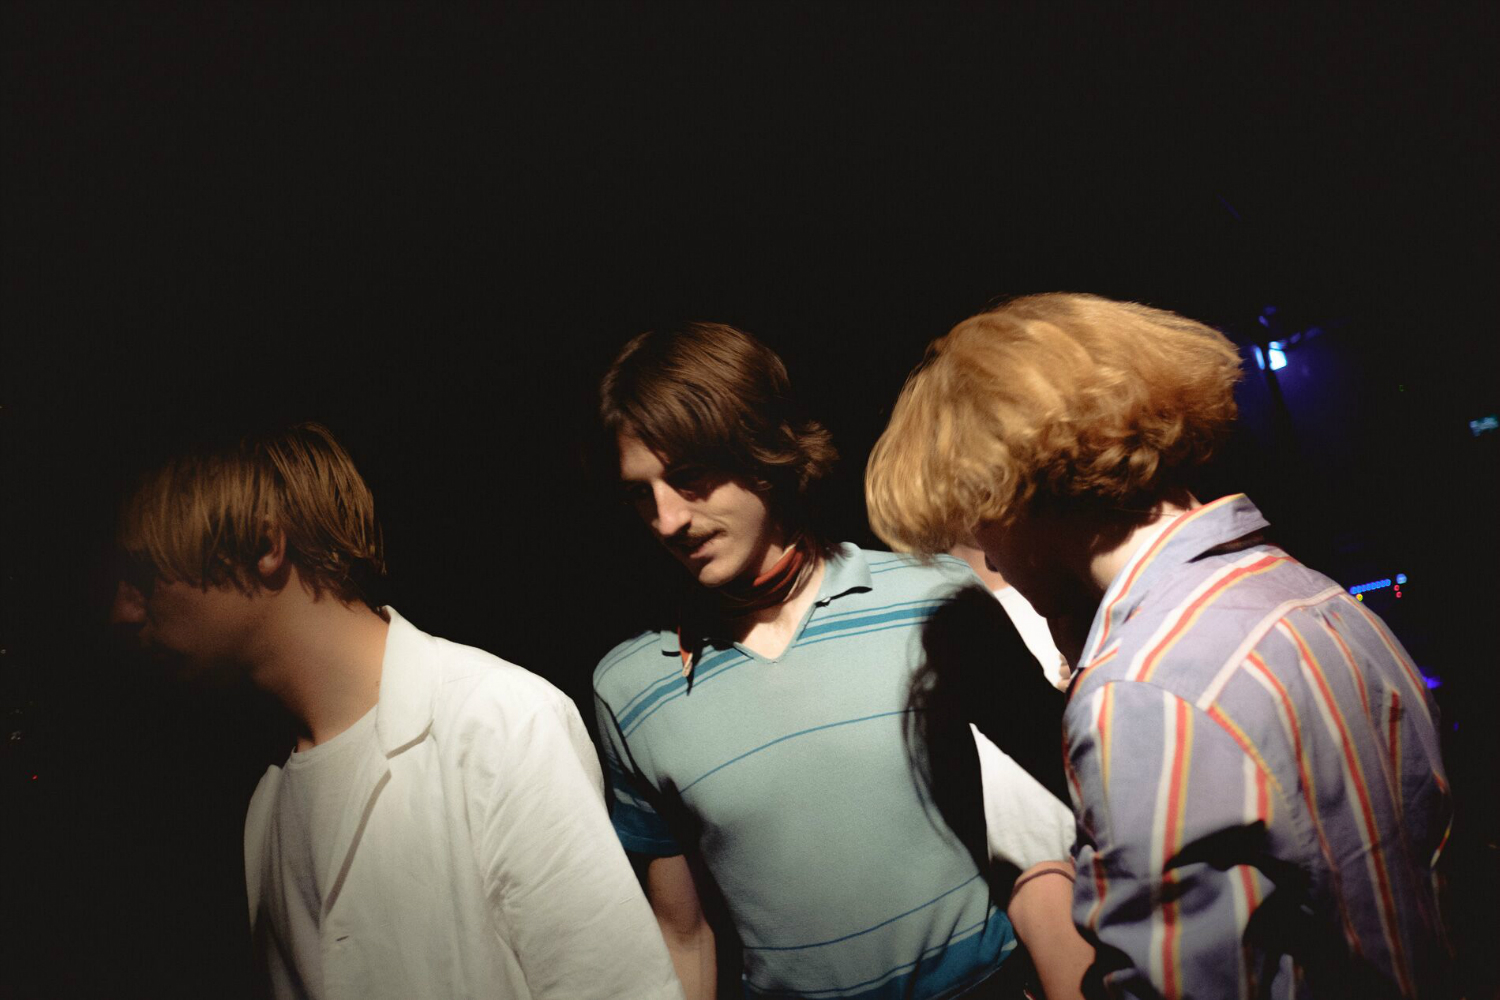 PARCELS INTERVIEW MUSIC AUSTRALIA NEWCOMER DAFT PUNK INDIE DISCO FUNK BERLIN